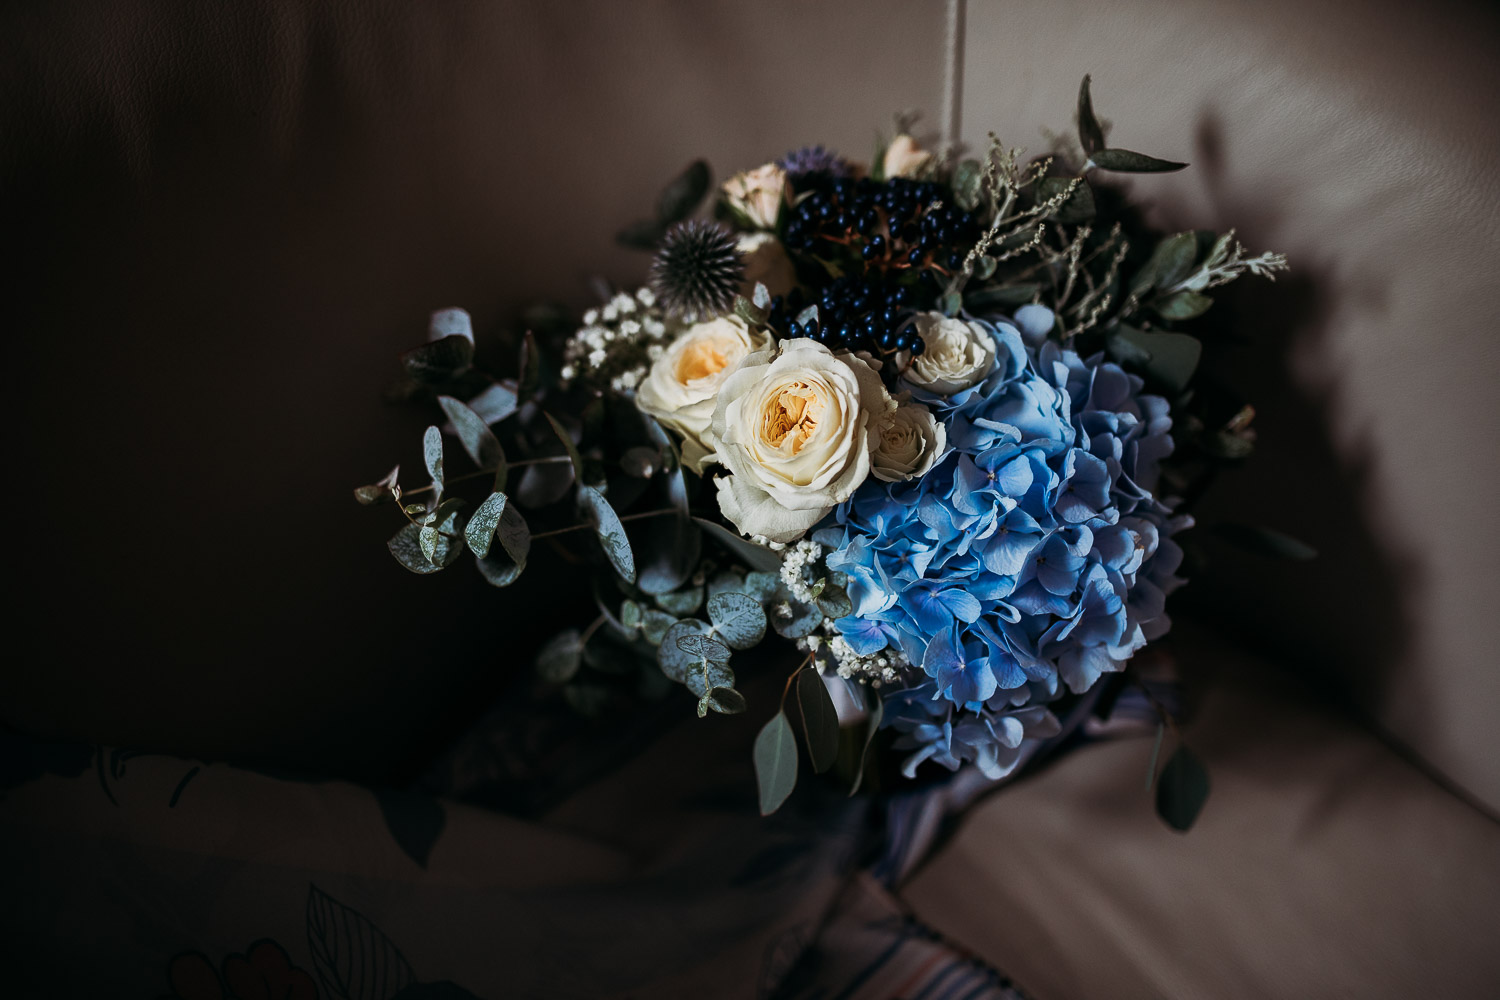 White roses and blue hydrangea for a wedding bouquet